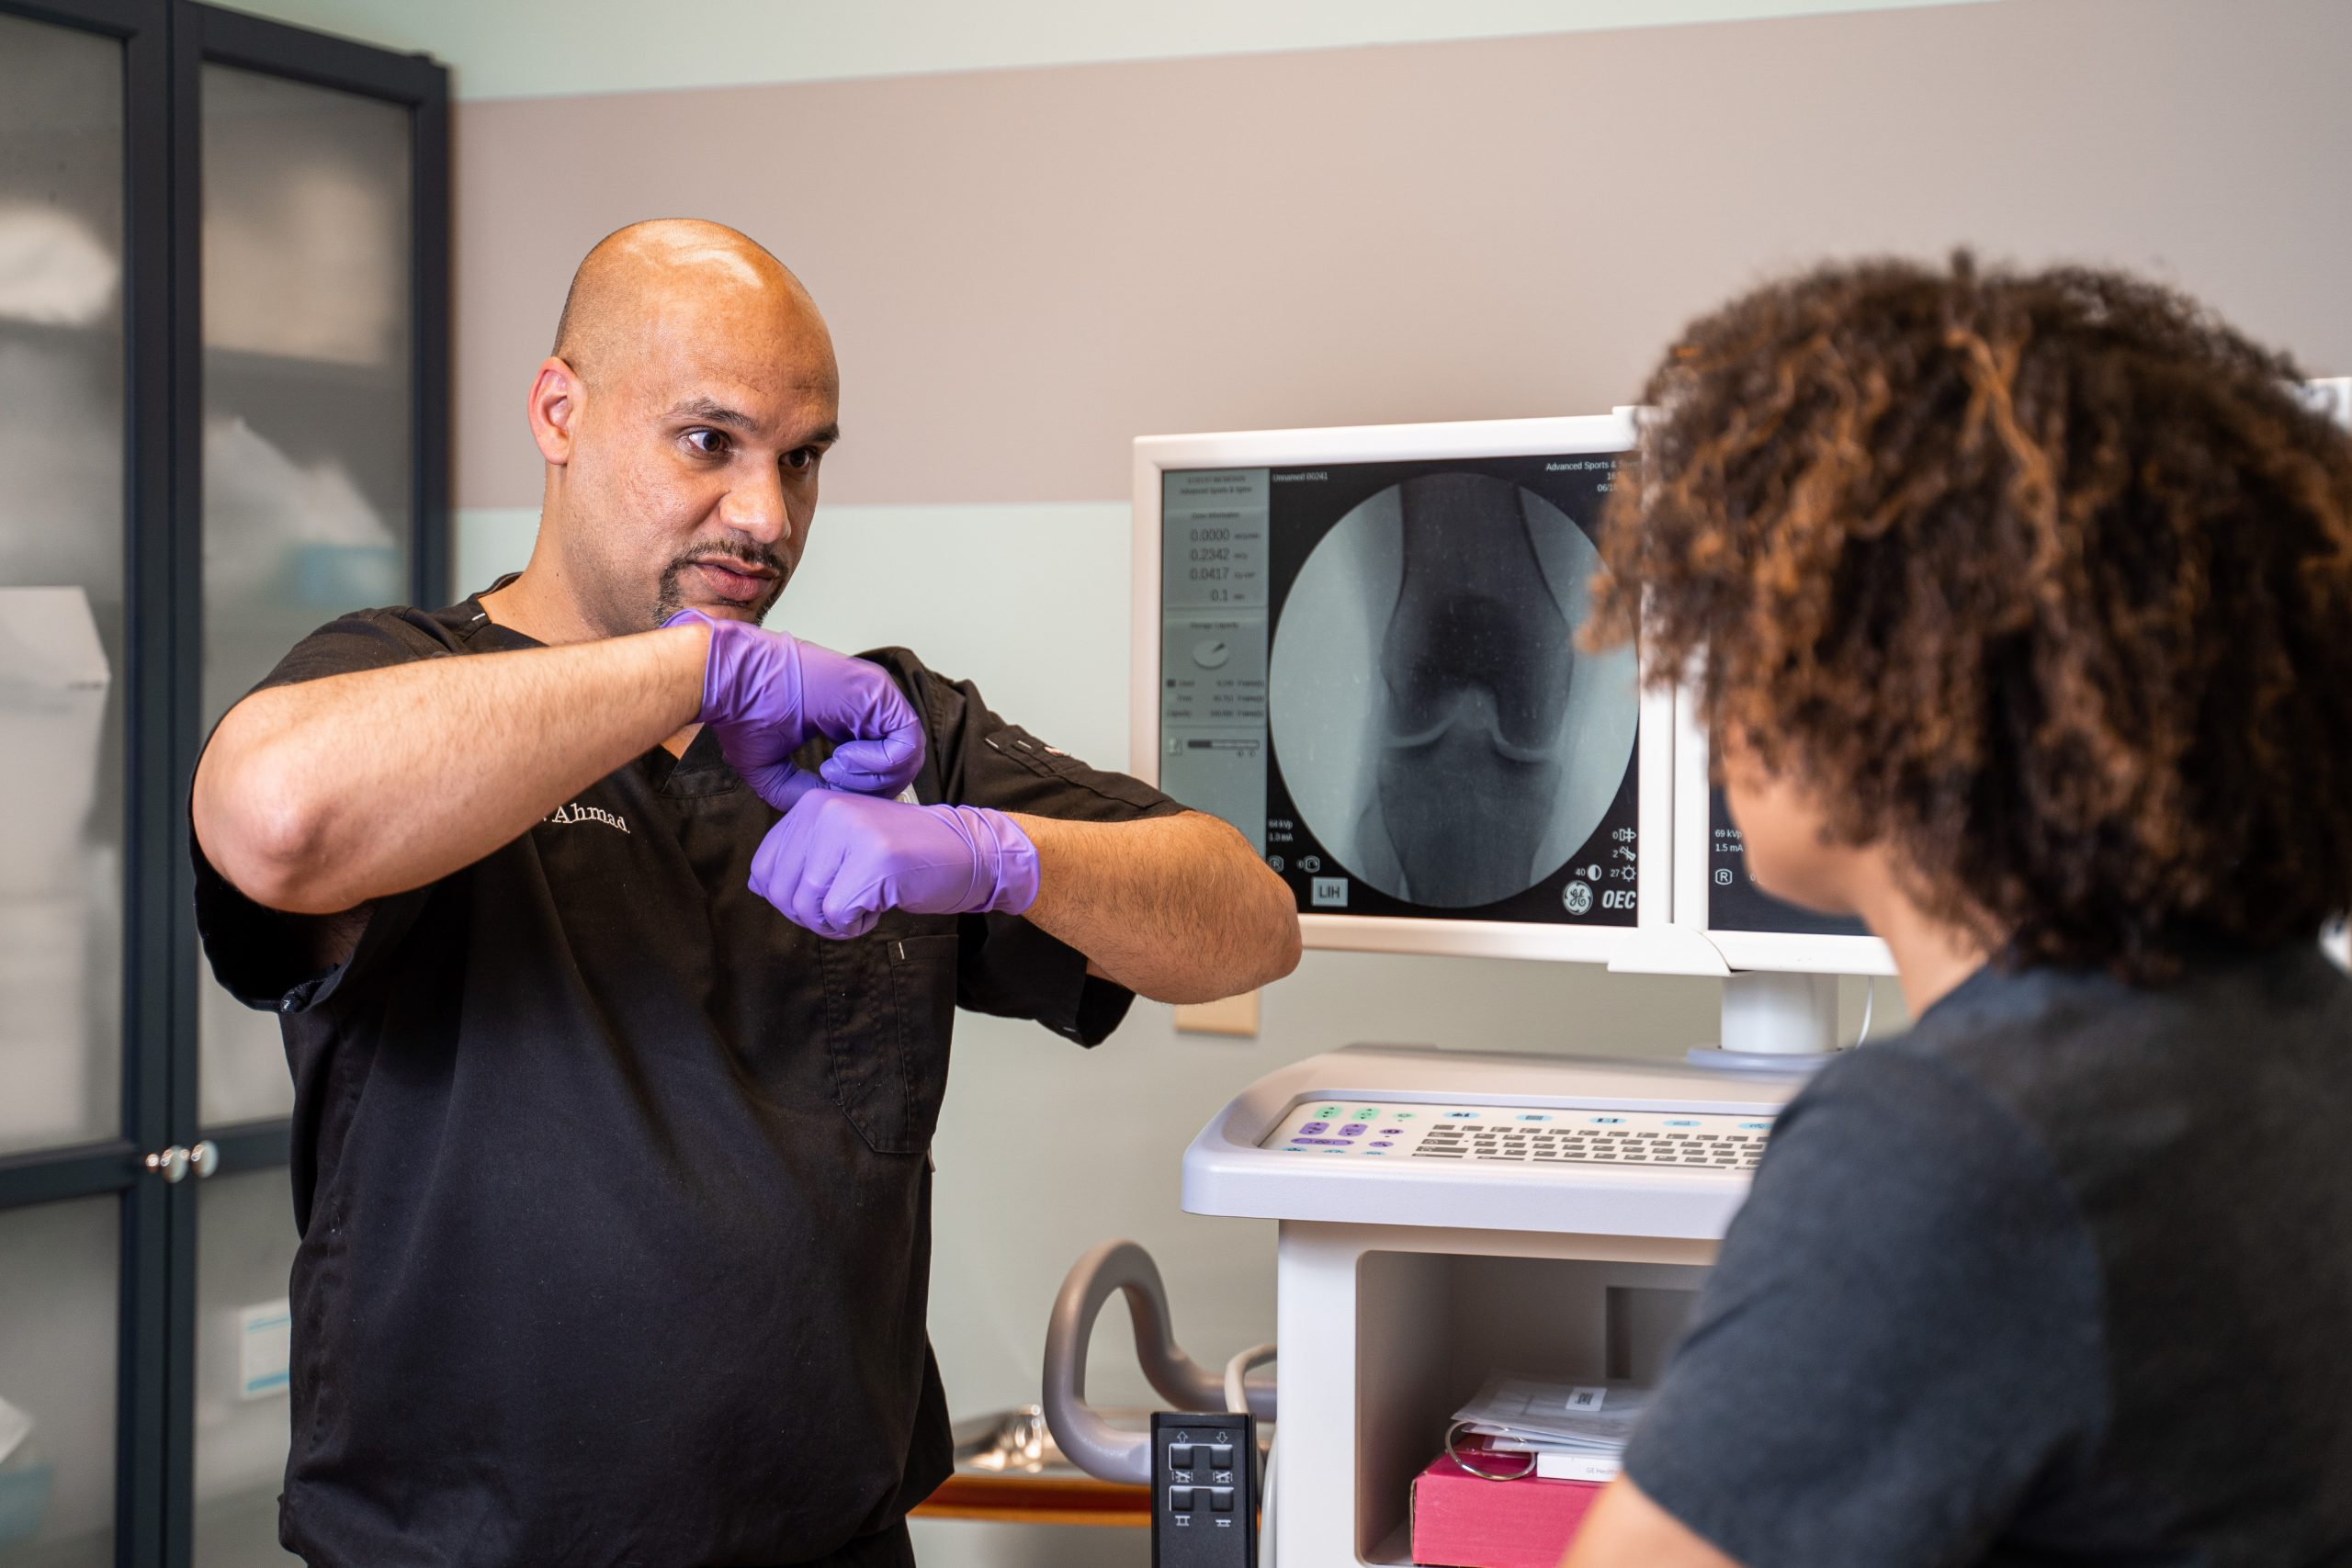 Dr. Usman Ahmad of Stem Cell Carolina offers stem cell therapy and prp therapy in Charlotte, NC